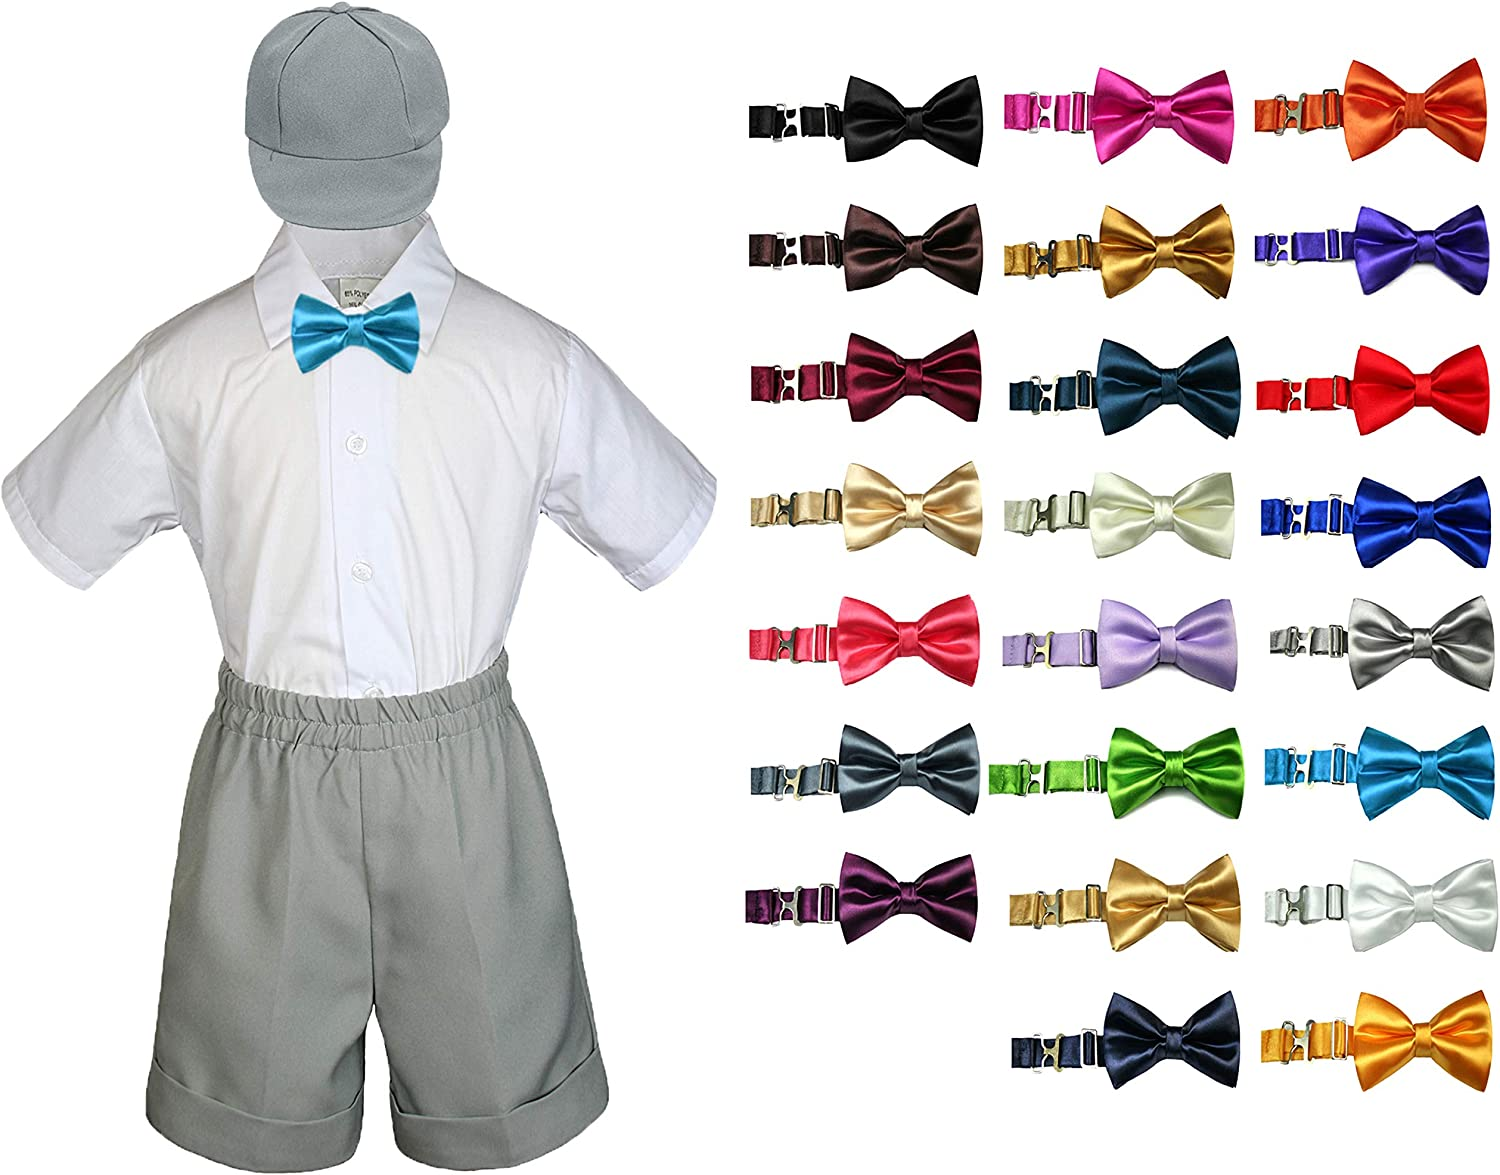 MILLTEX 4 Pieces Formal Party Wedding Color Satin Bow tie Shirt W//Hat Brown Shorts Set New Born Baby Boy Toddler Sm-4T